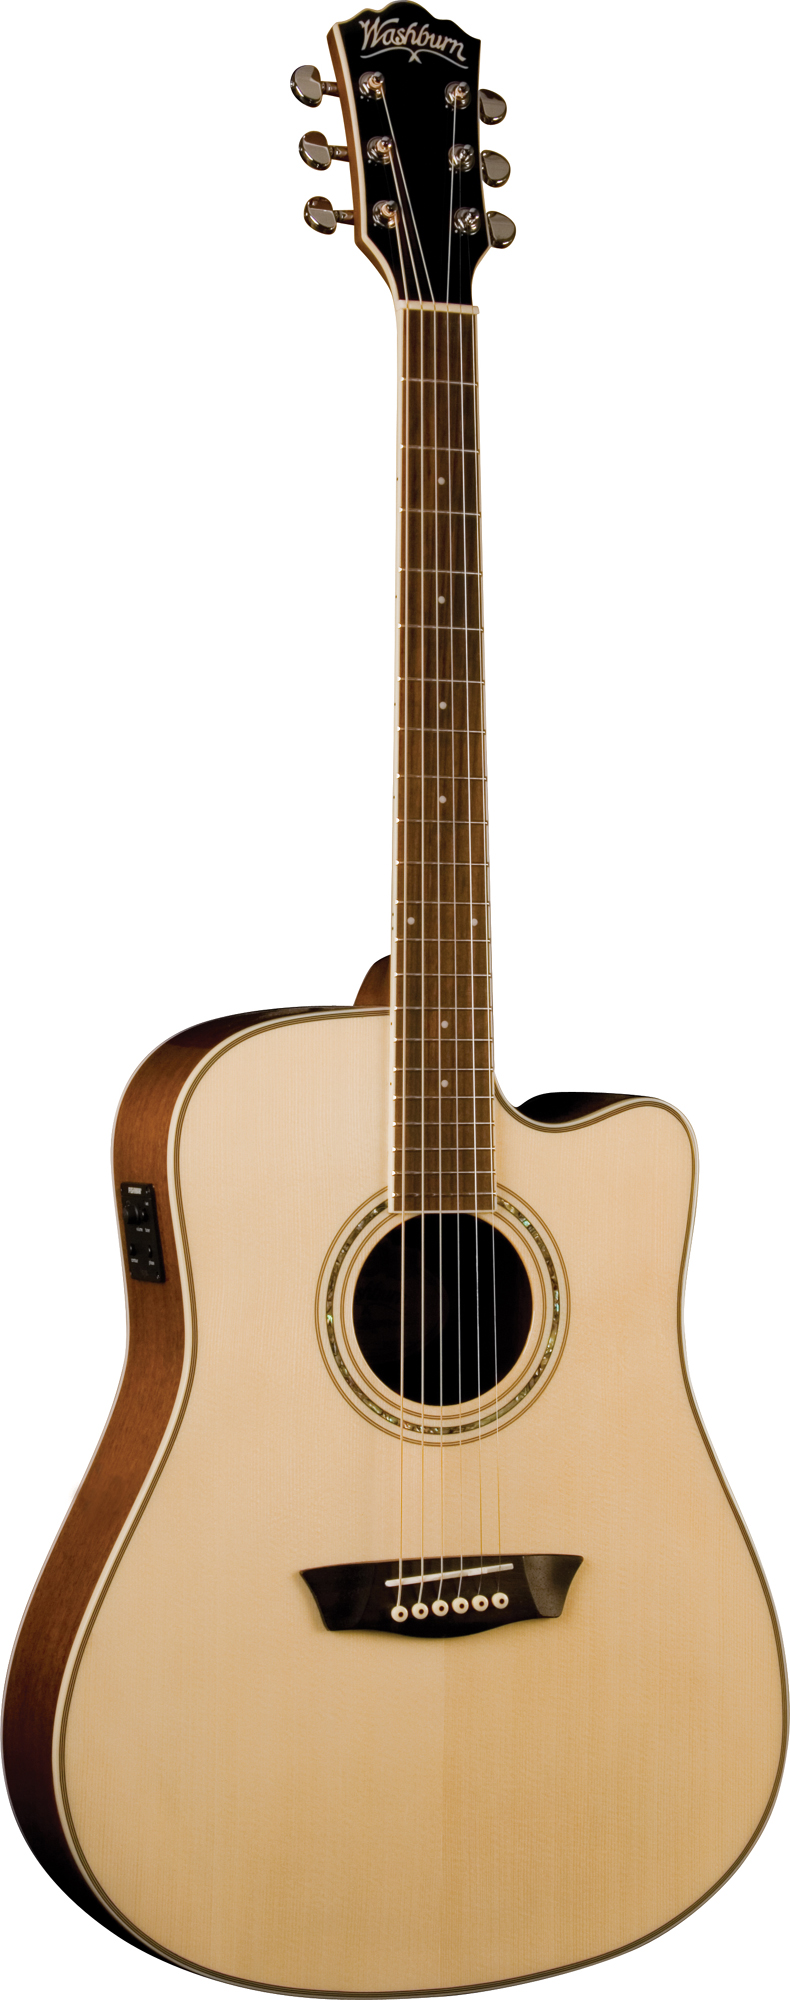 washburn wcd18ce acoustic dreadnought cutaway style guitar with chrome tuners was12 wcd18ce. Black Bedroom Furniture Sets. Home Design Ideas